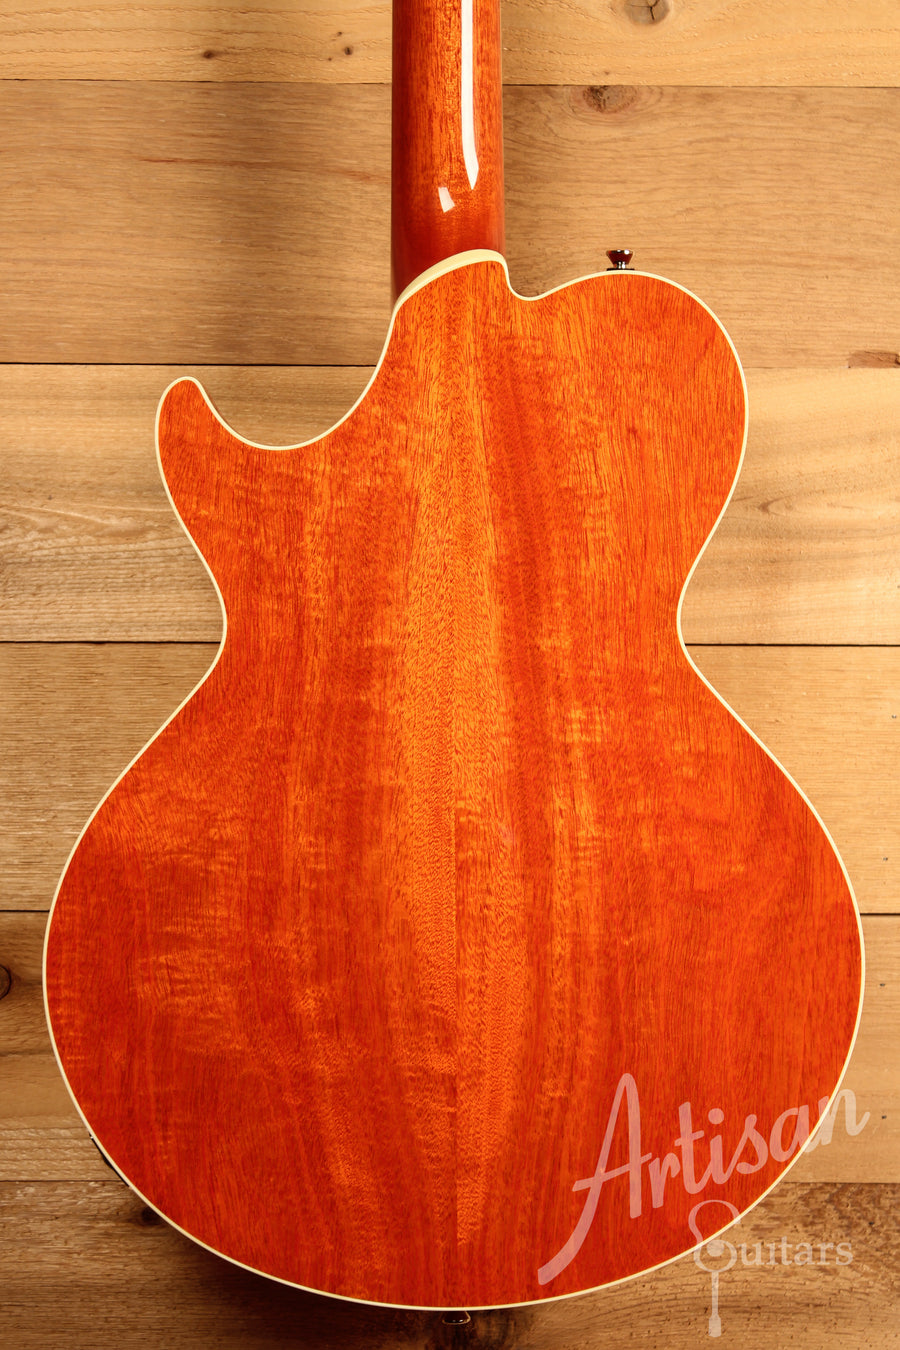 Collings SoCo Deluxe Guitar Amber Sunburst Flame Top ID-11408 - Artisan Guitars